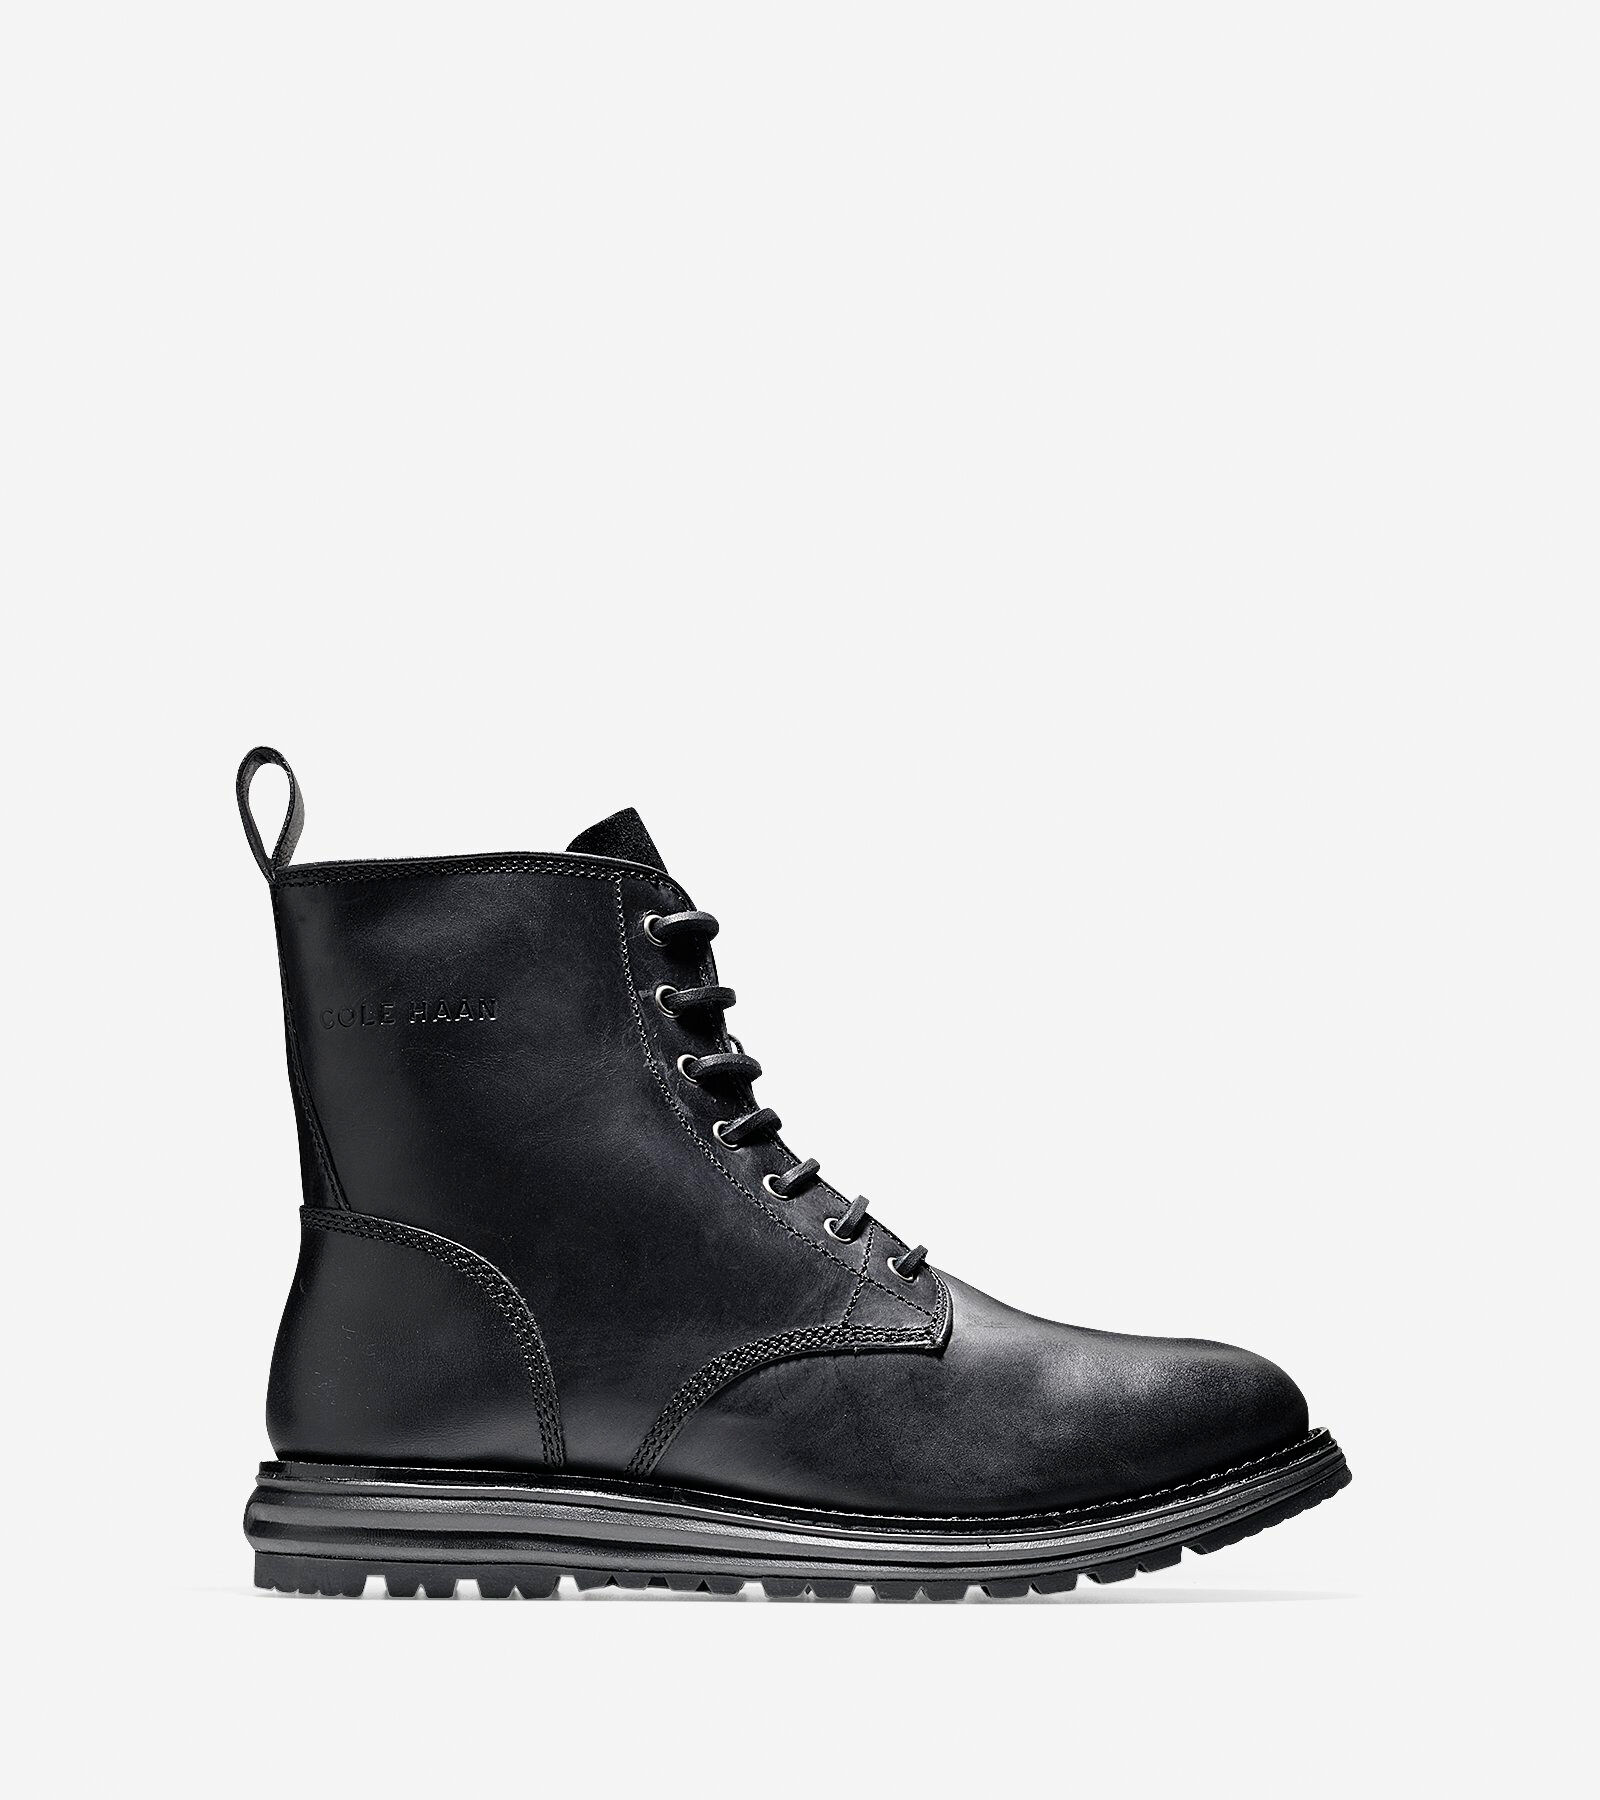 discount 100% guaranteed affordable sale online Cole Haan Leather Lace-Up Booties cheap fashion Style clearance manchester great sale pre order online rEuxABDi9